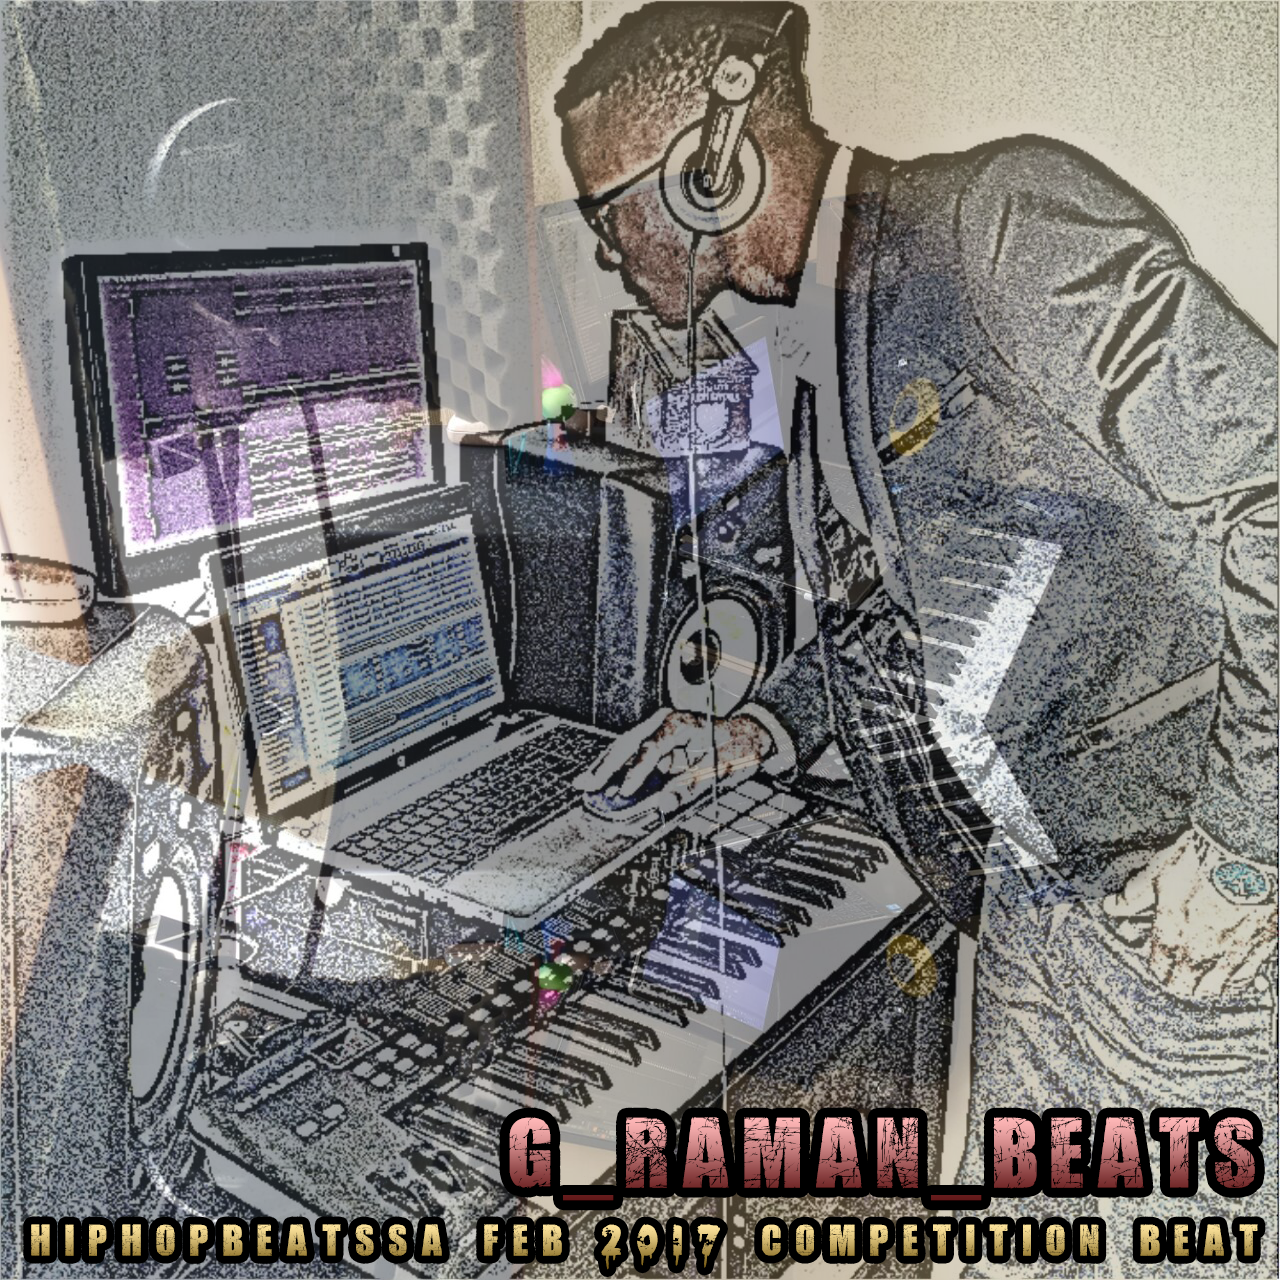 Hip Hop Beats SA Feb-March Competition beat prod by (G-raman Beats)